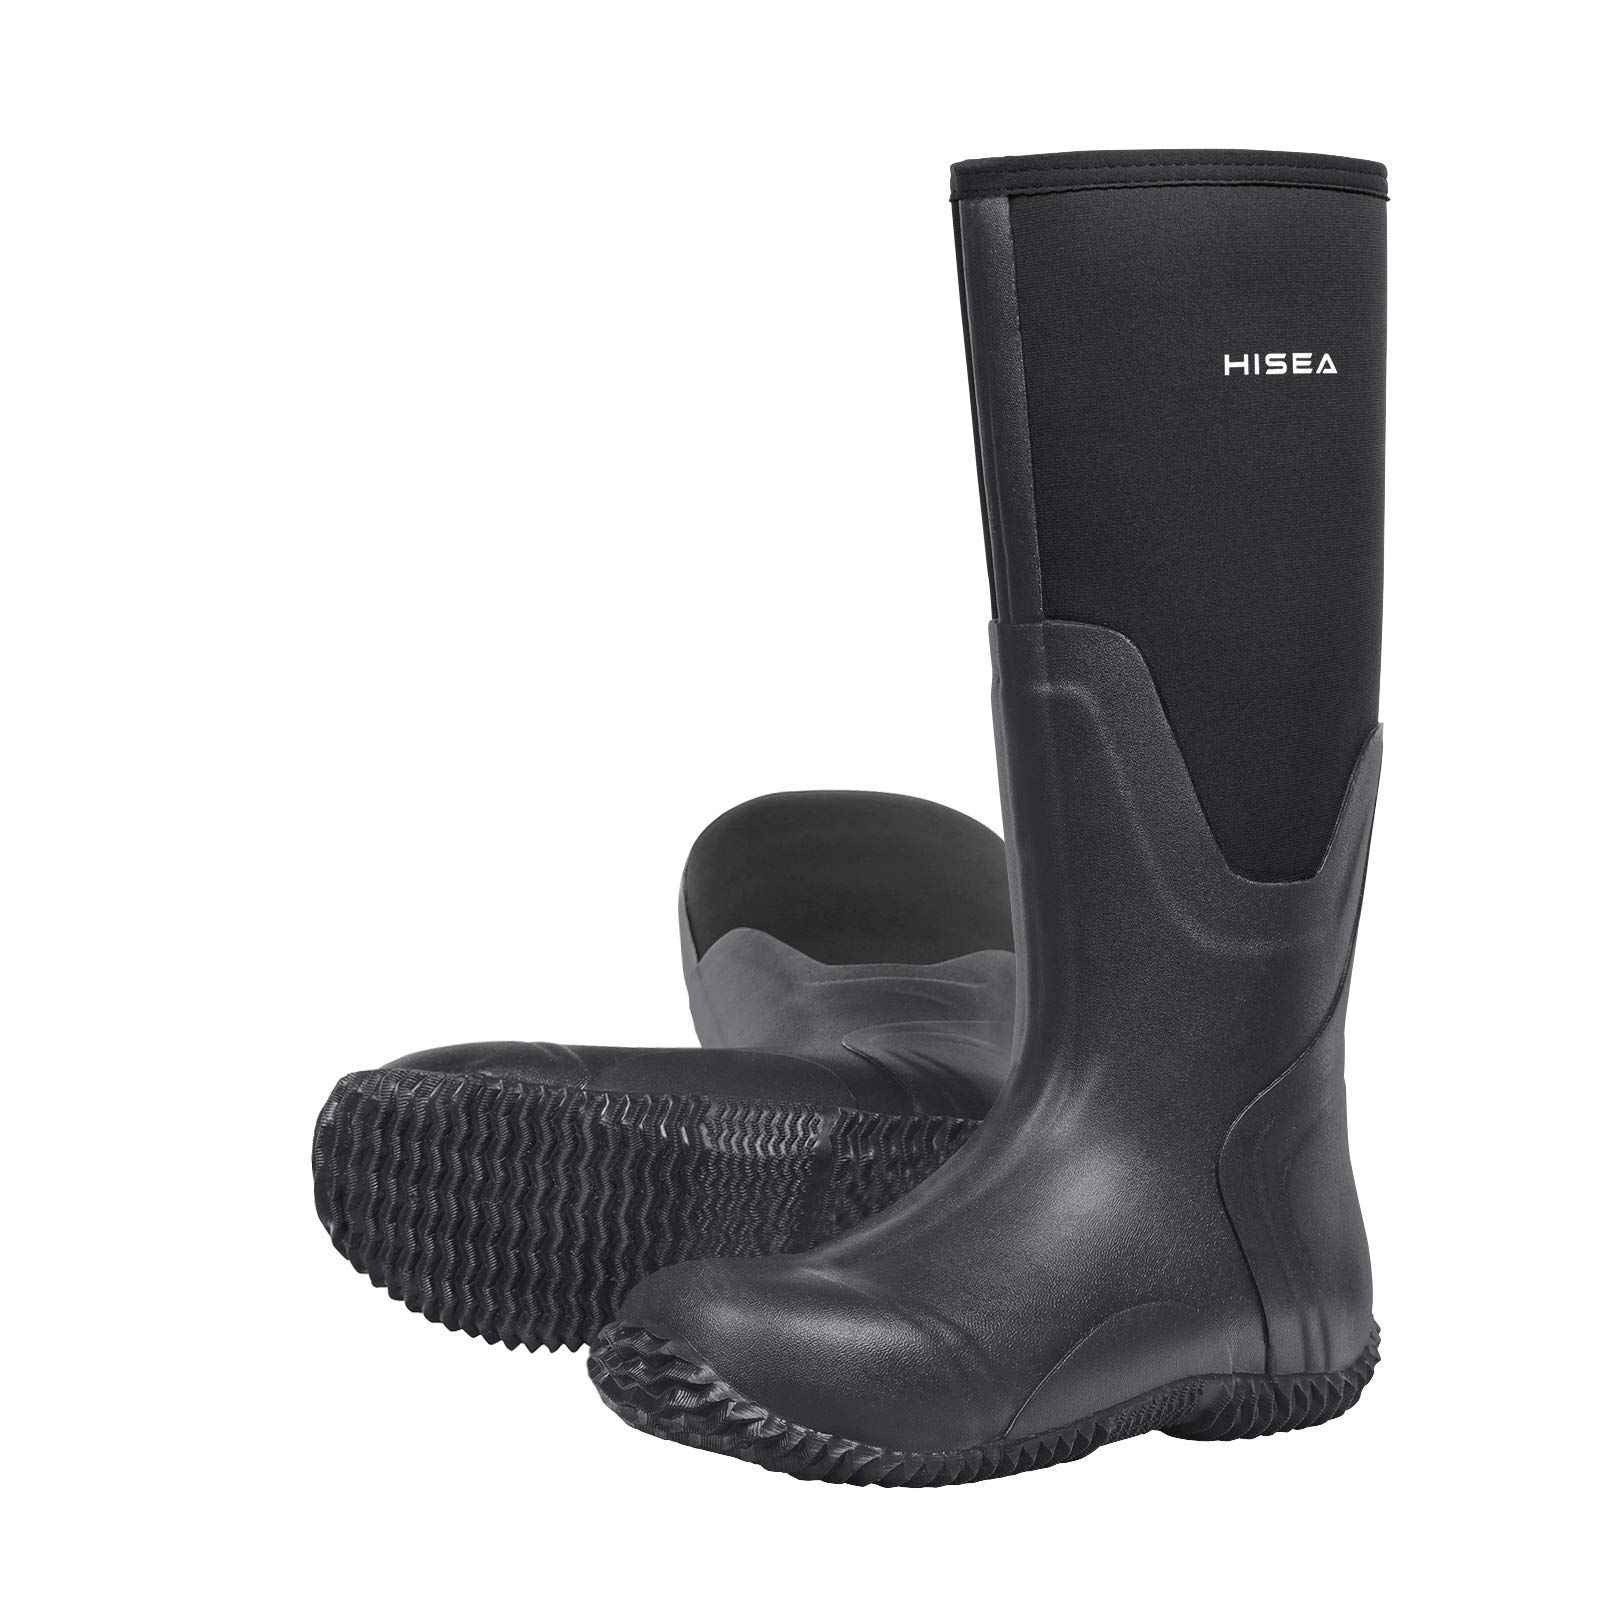 Hisea Mens Insulated Rubber Neoprene Boots Waterproof Durable Insulated Outdoor Winter Snow Rain Boots Hunting Arctic Boot Black Size 8 by Hisea (Image #1)